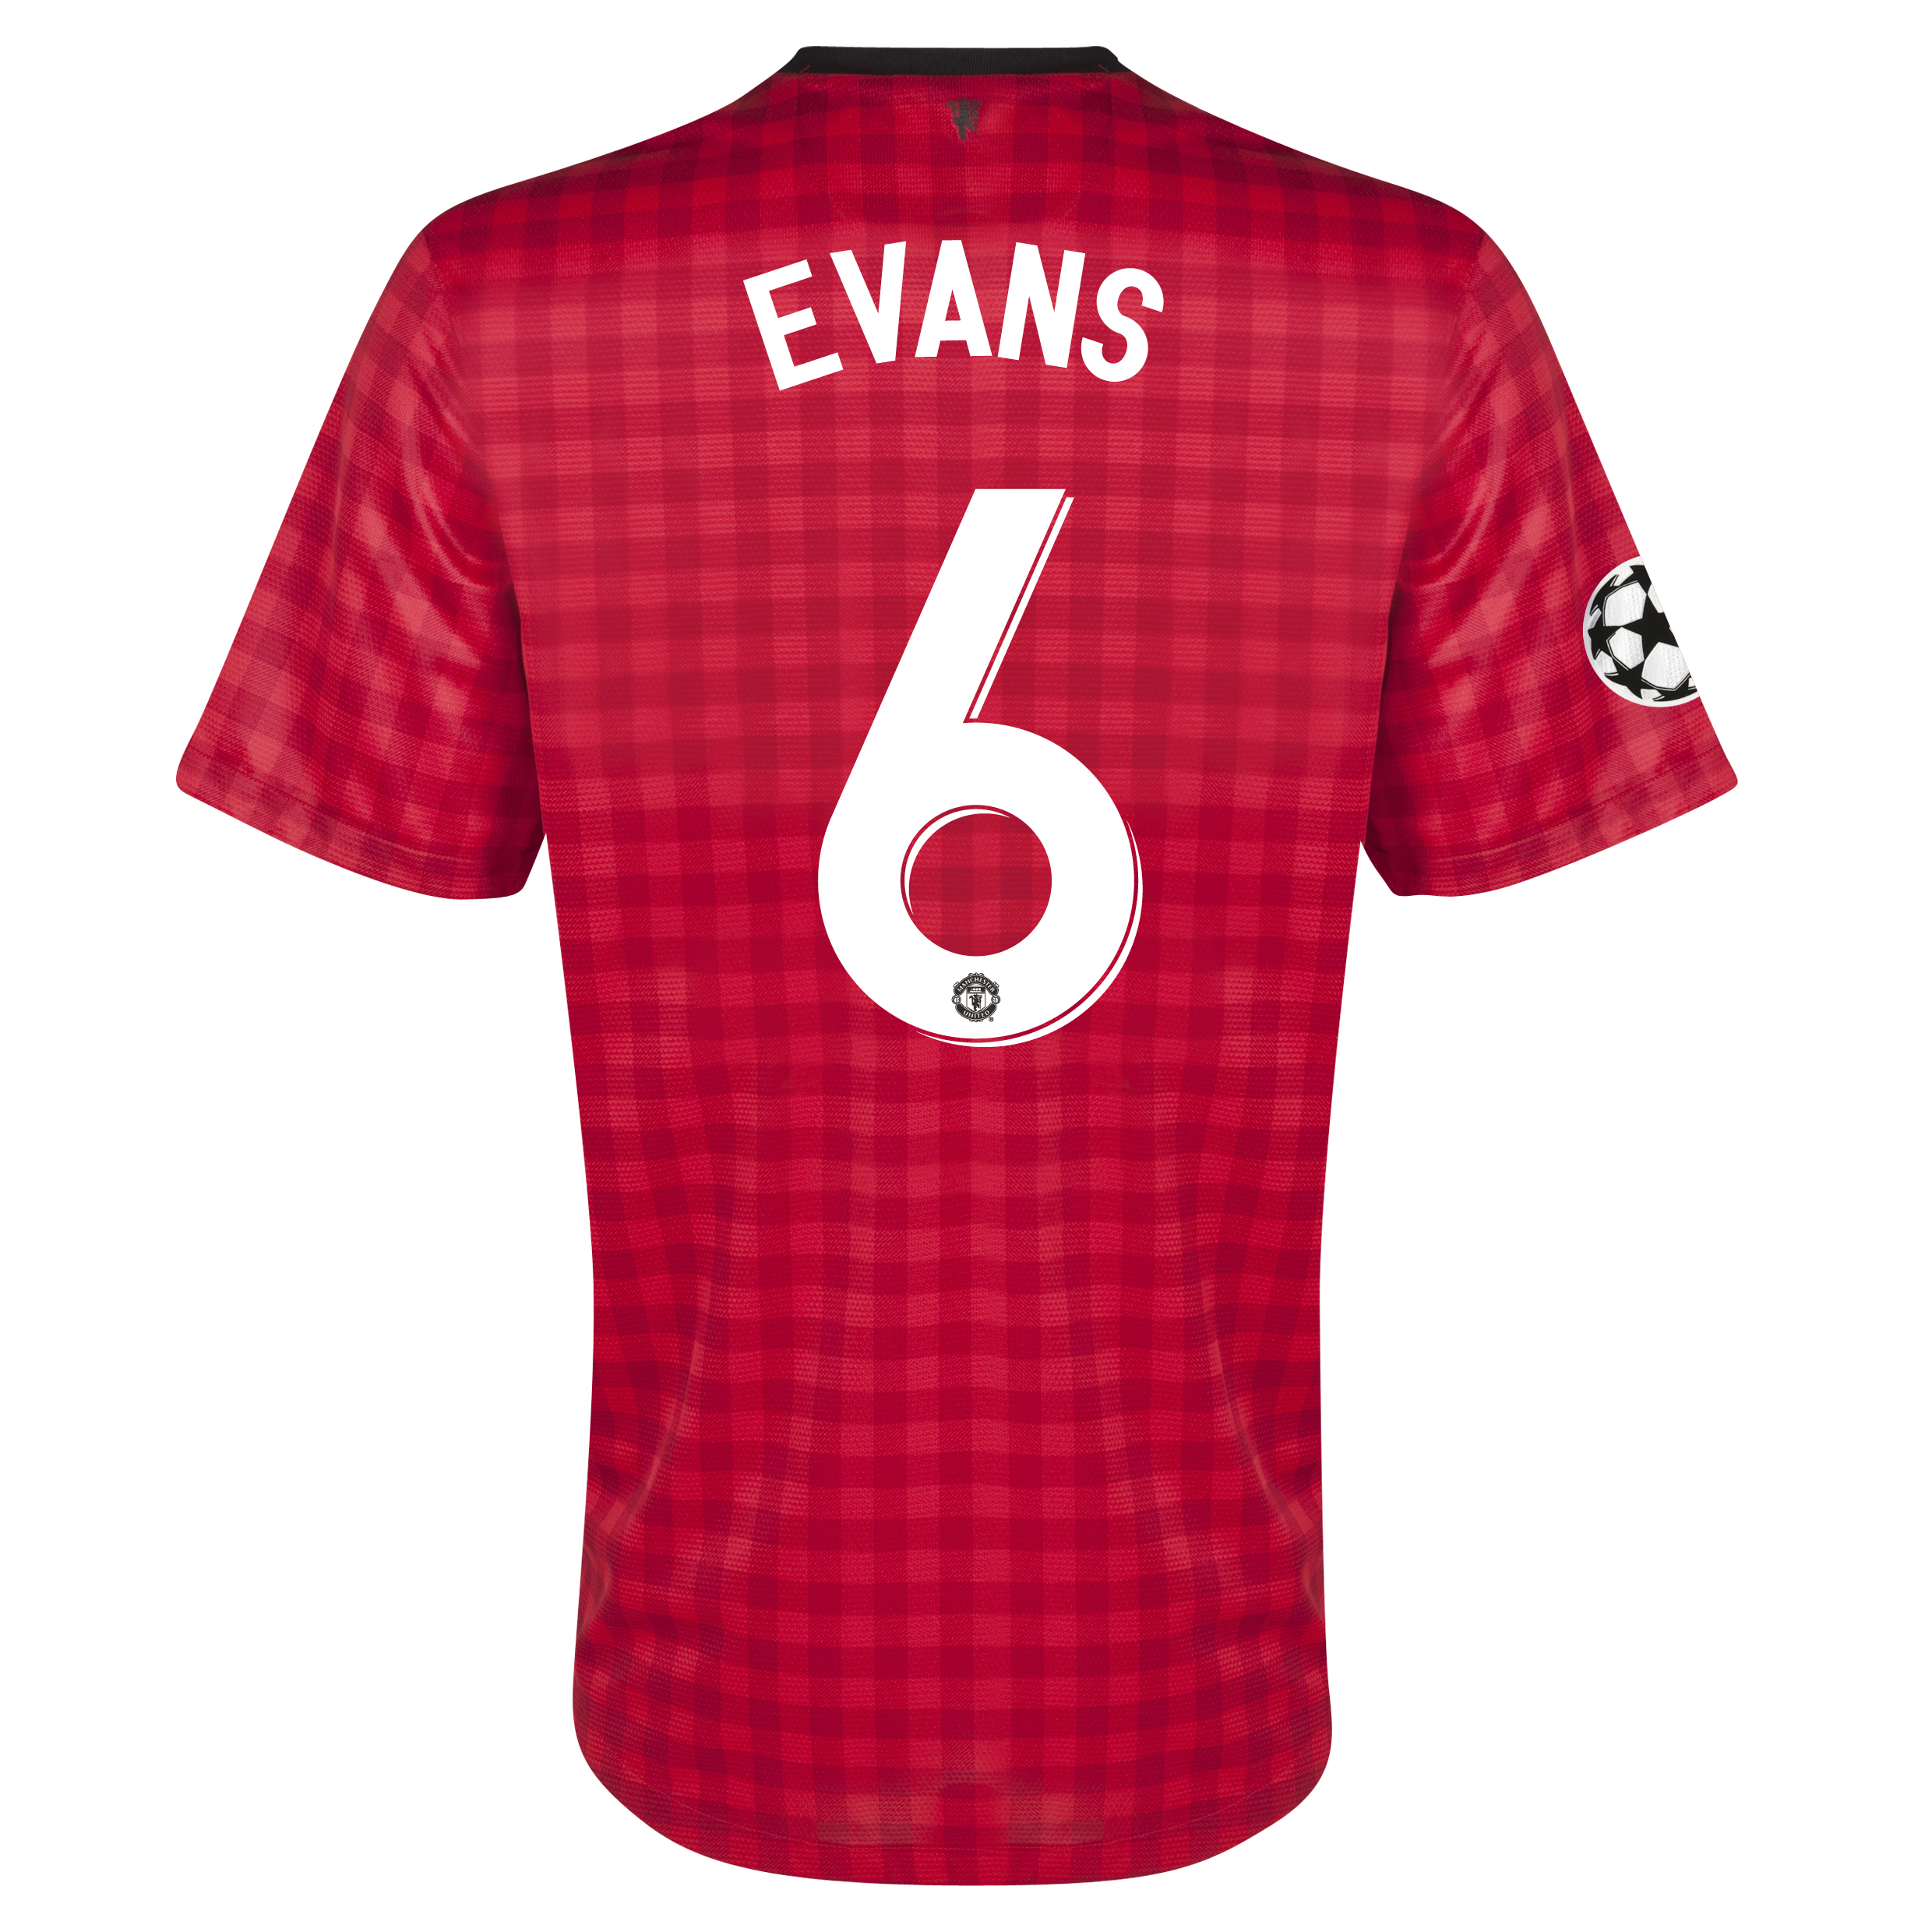 Man United UEFA Champions League Home Shirt 2012/13  - Youths with Evans 6 printing